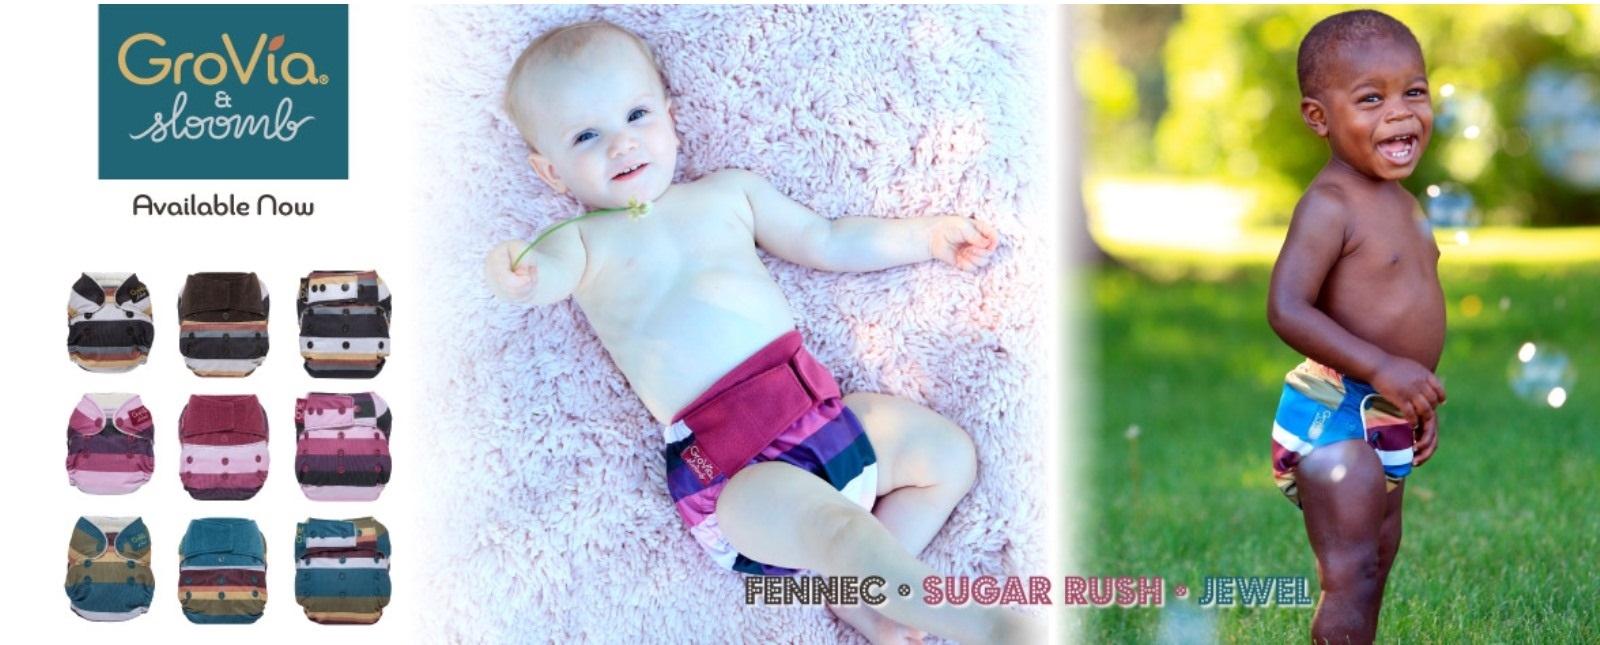 grovia cloth diapers canada - sloomb collaboration